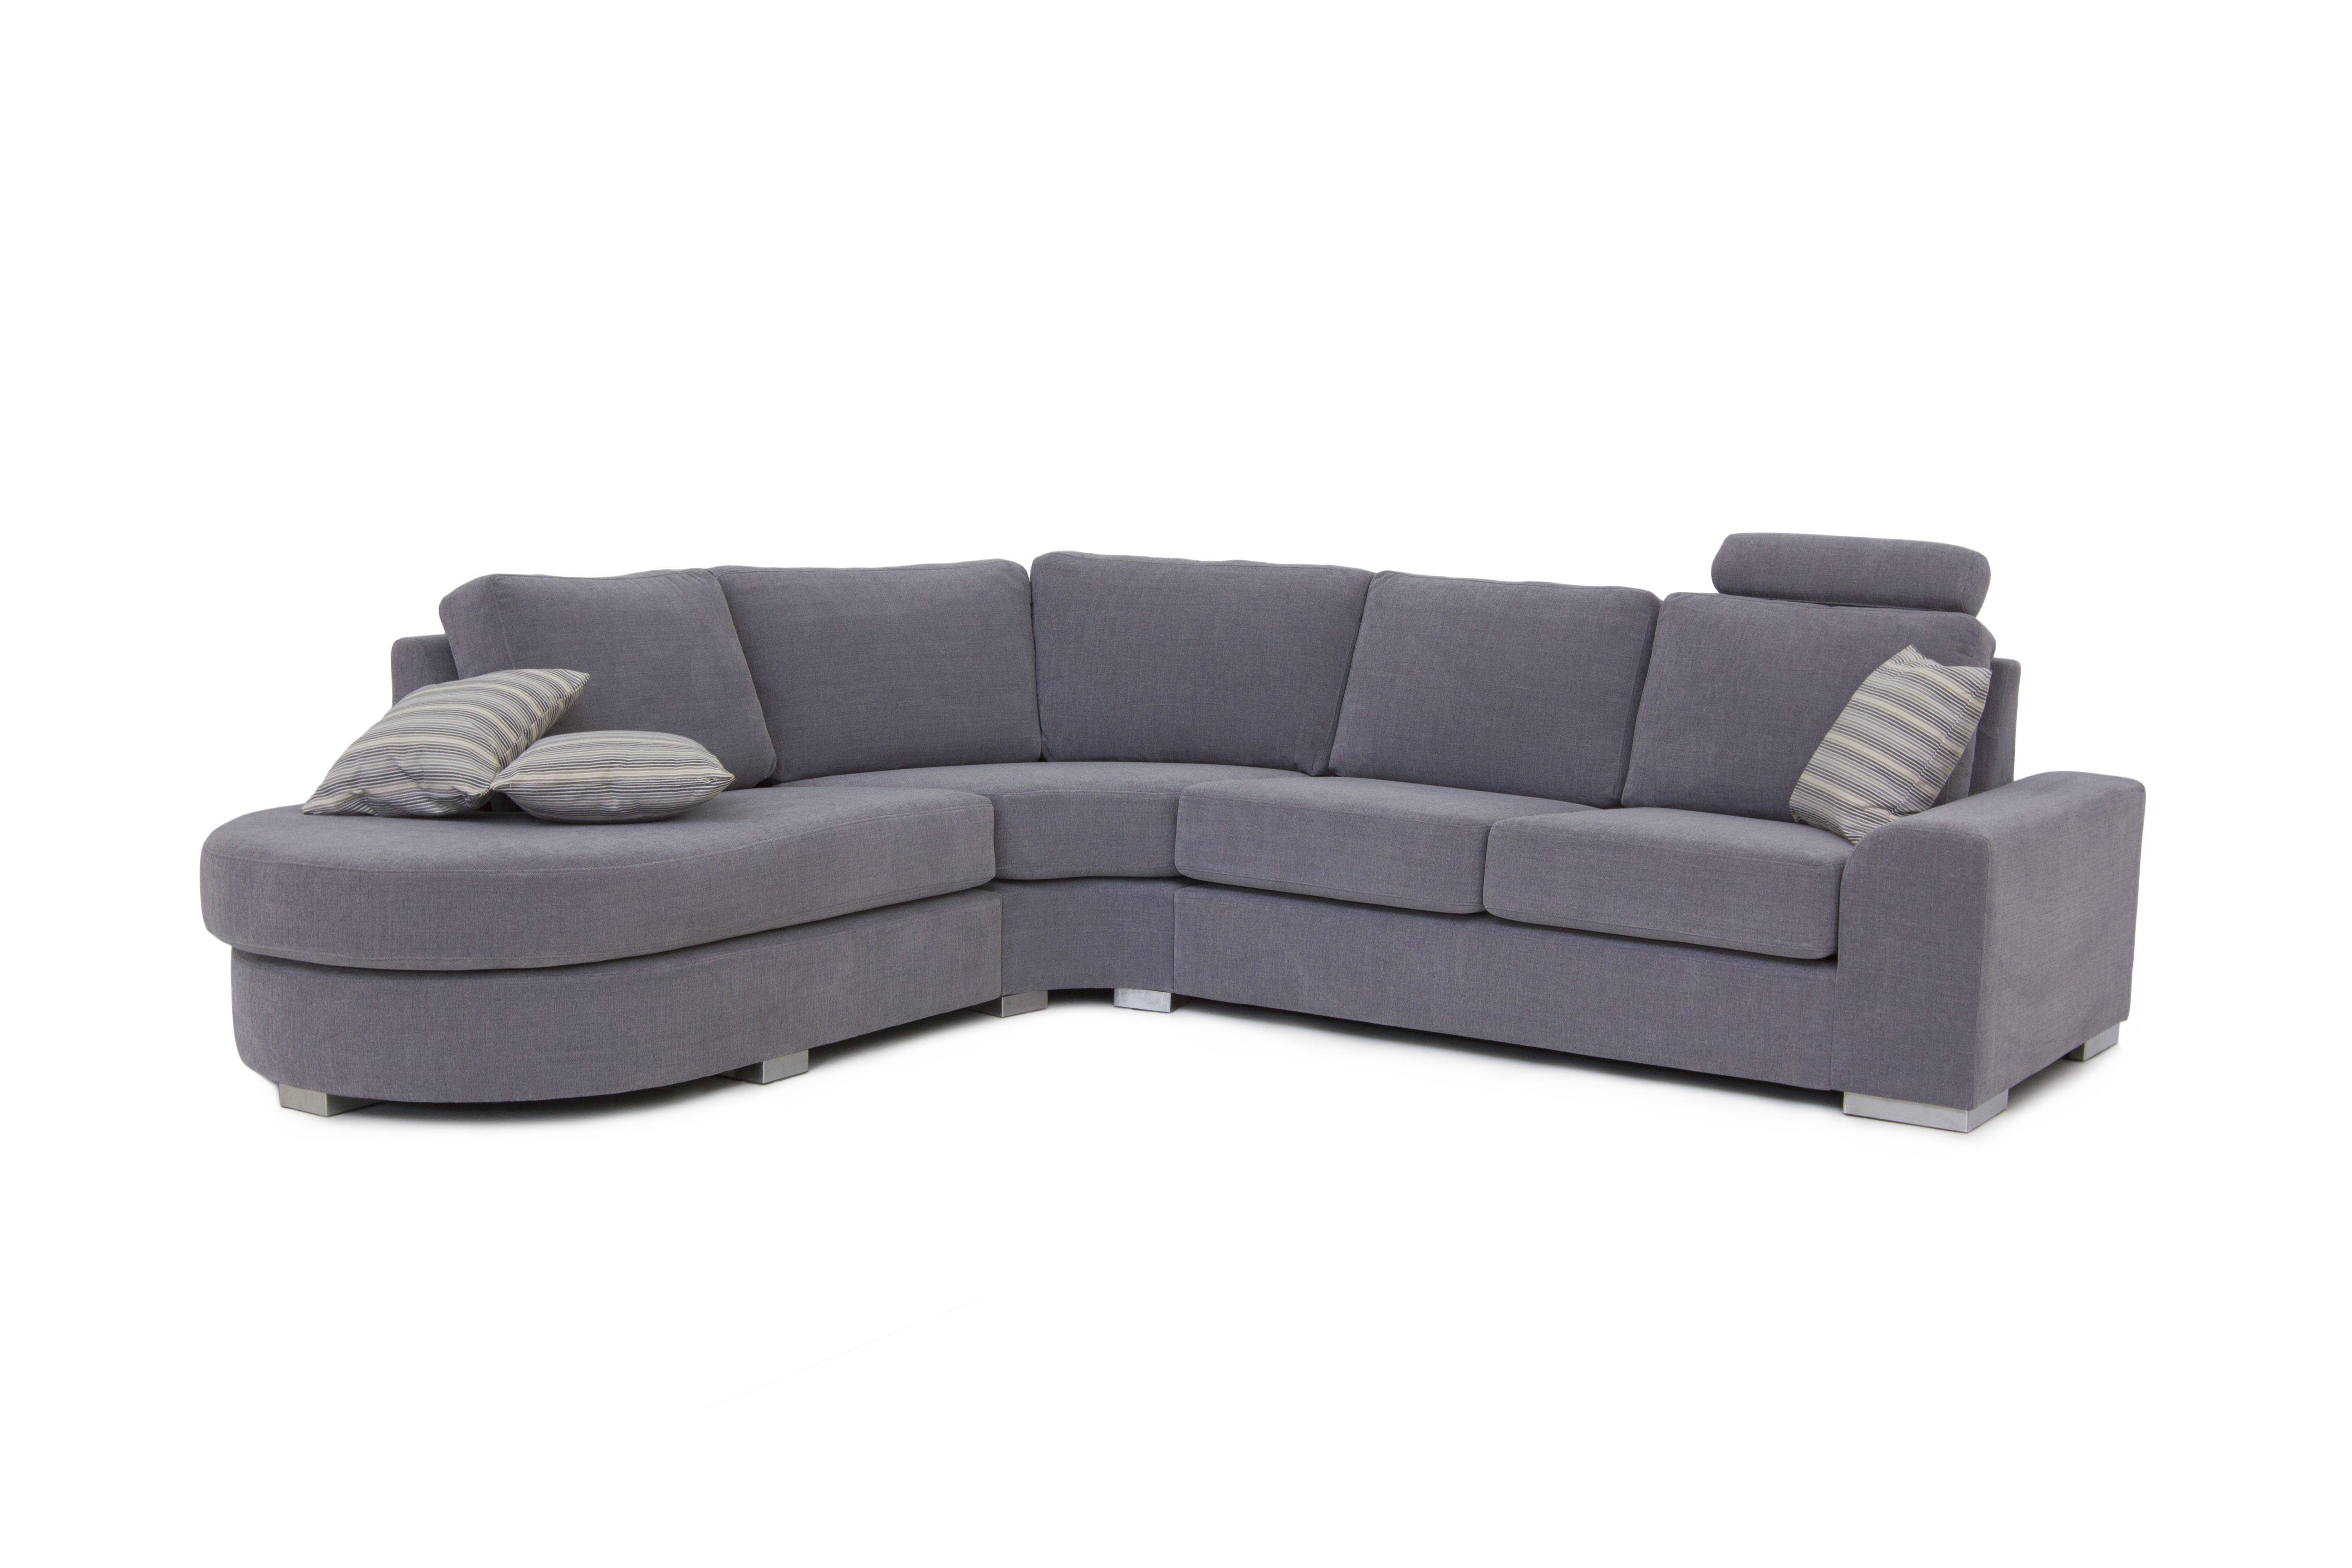 Curved Corner Sofa - Leather Sectional Sofa with regard to Rounded Sofa (Image 3 of 25)